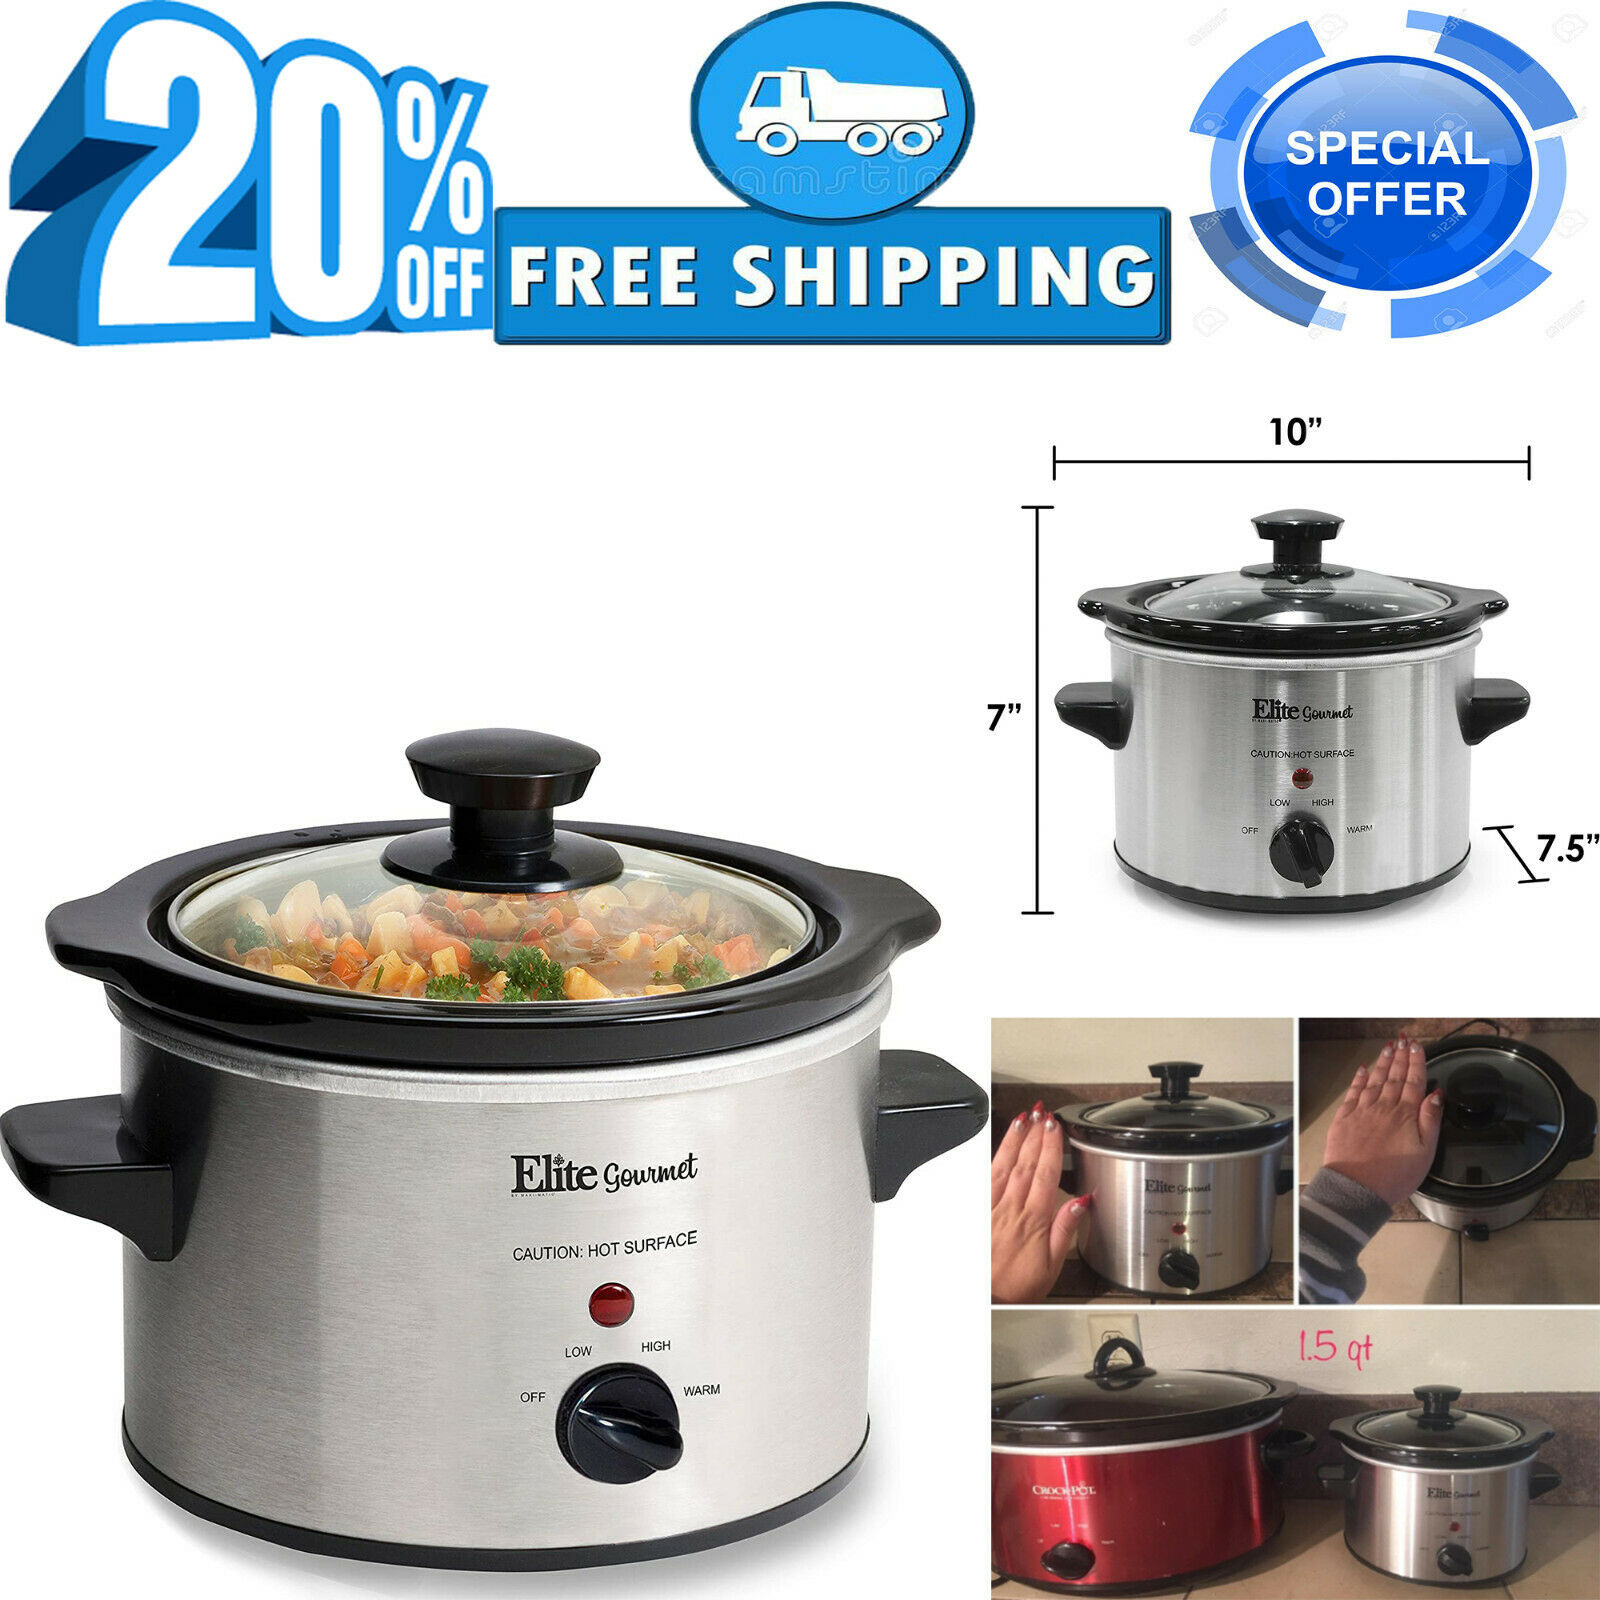 5Small Slow Cooker Stainless Steel Crock Pot Mini Kitchen Appliance Portable 1.5